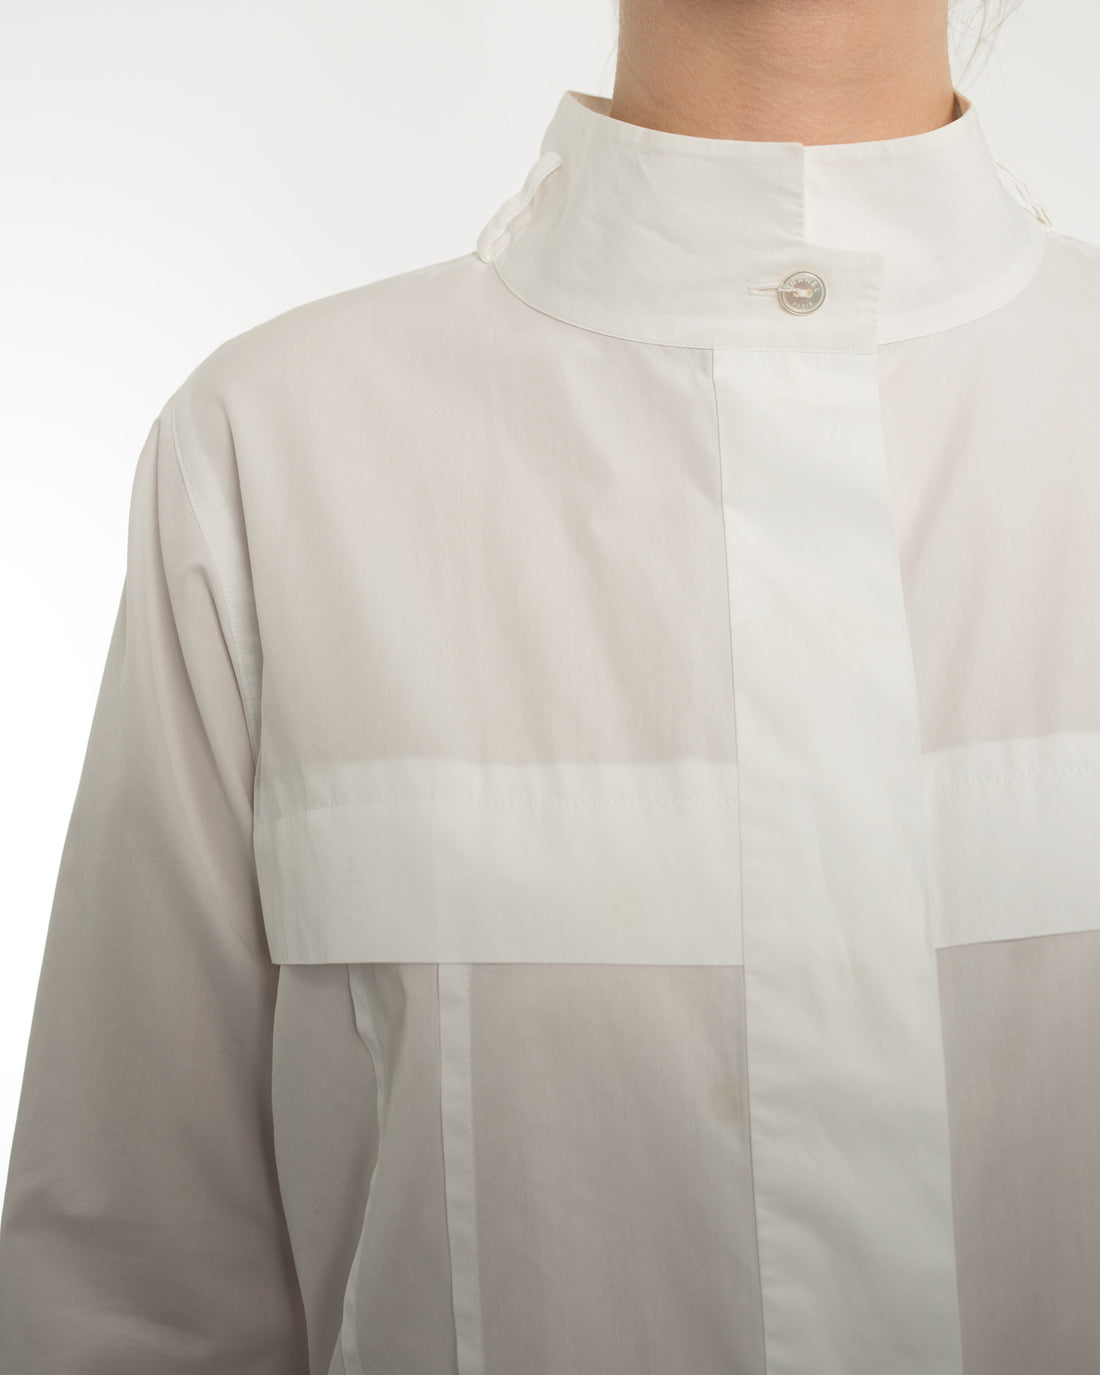 Chanel 08P White Cotton Seamed Button Down Shirt - 8